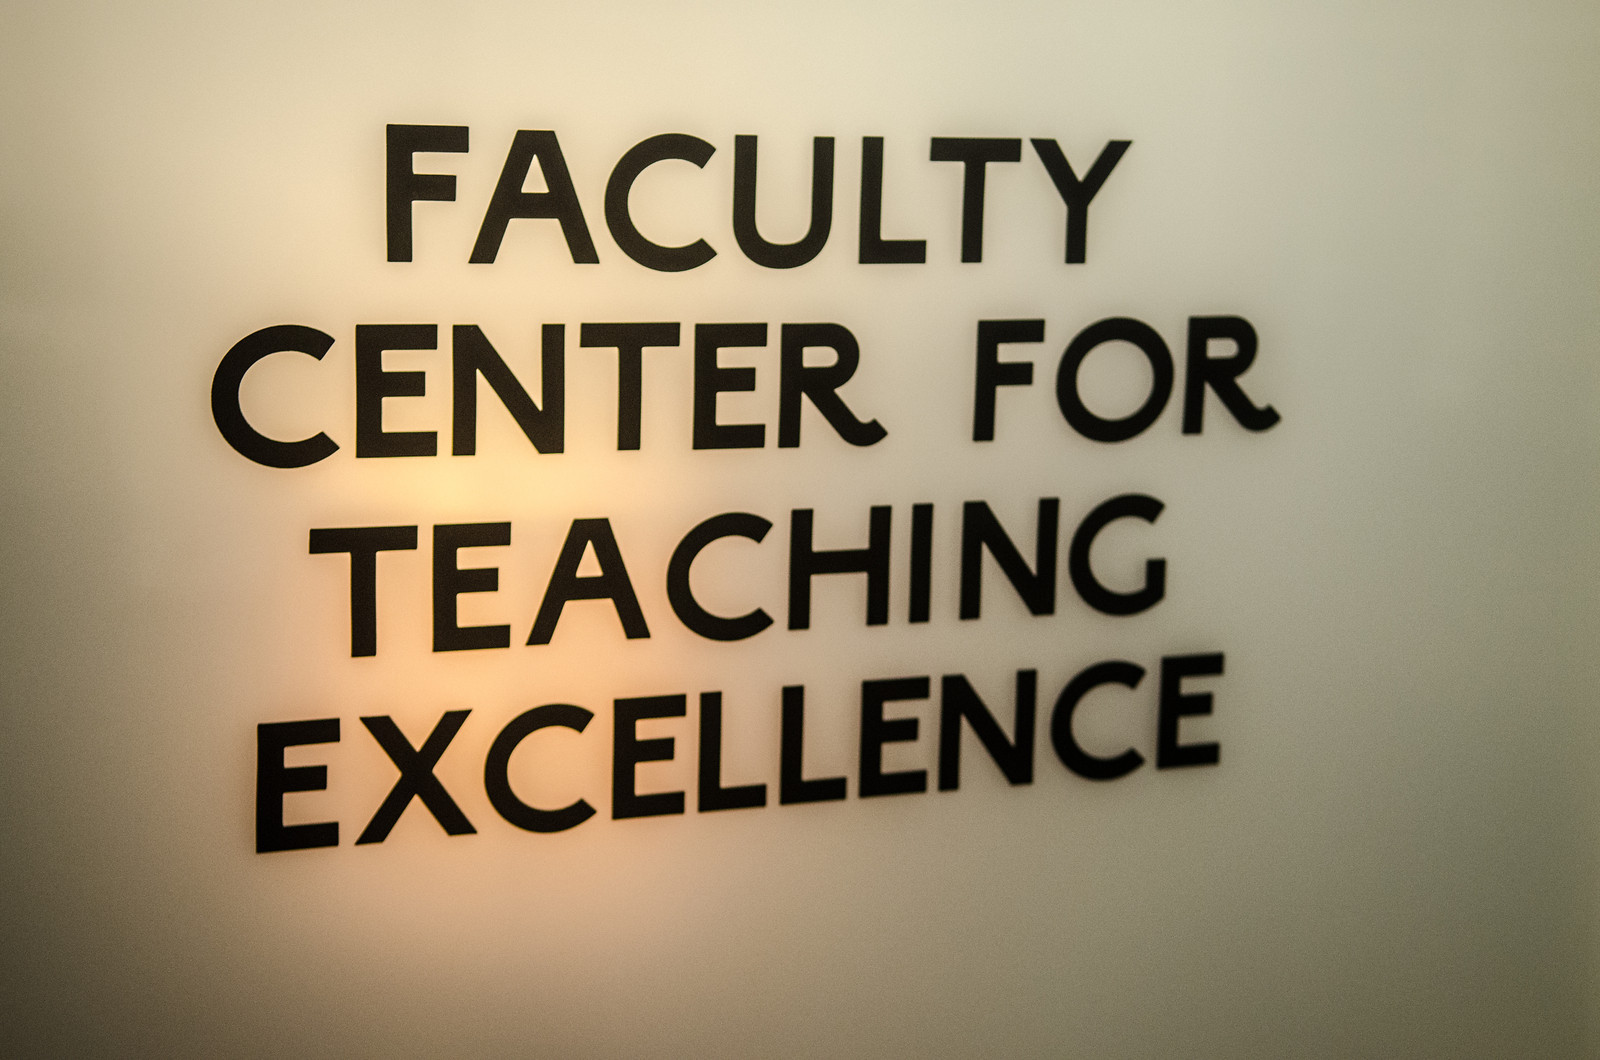 faculty-center-for-teaching-excellence-29-x3.jpg